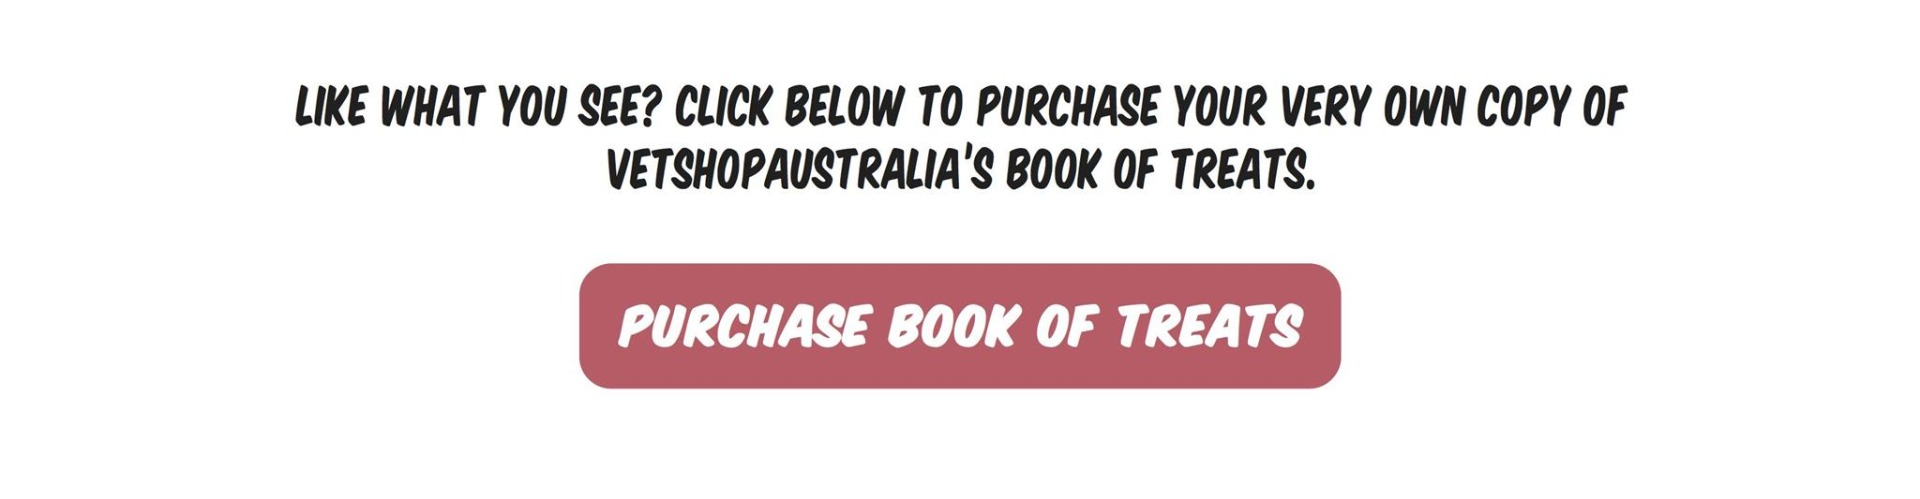 Purchase Book of Treats